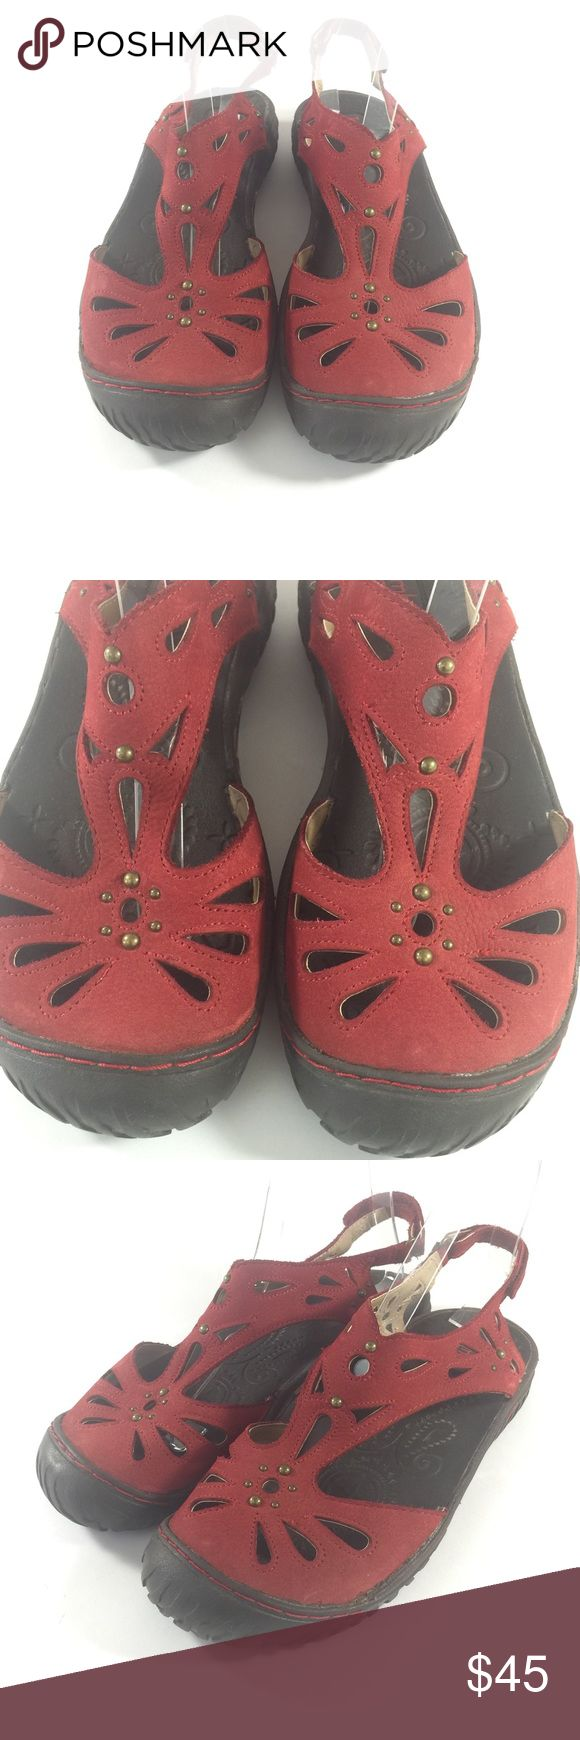 Hamburg Adventure Designs Clementine Sandals 7.5 Up for sale is this great pair of Jambu Clementine Sandals! Red leather with cut out detail!  Women's Size 7.5   CONDITION: Good Condition! Minor signs of wear. Jambu Shoes Sandals